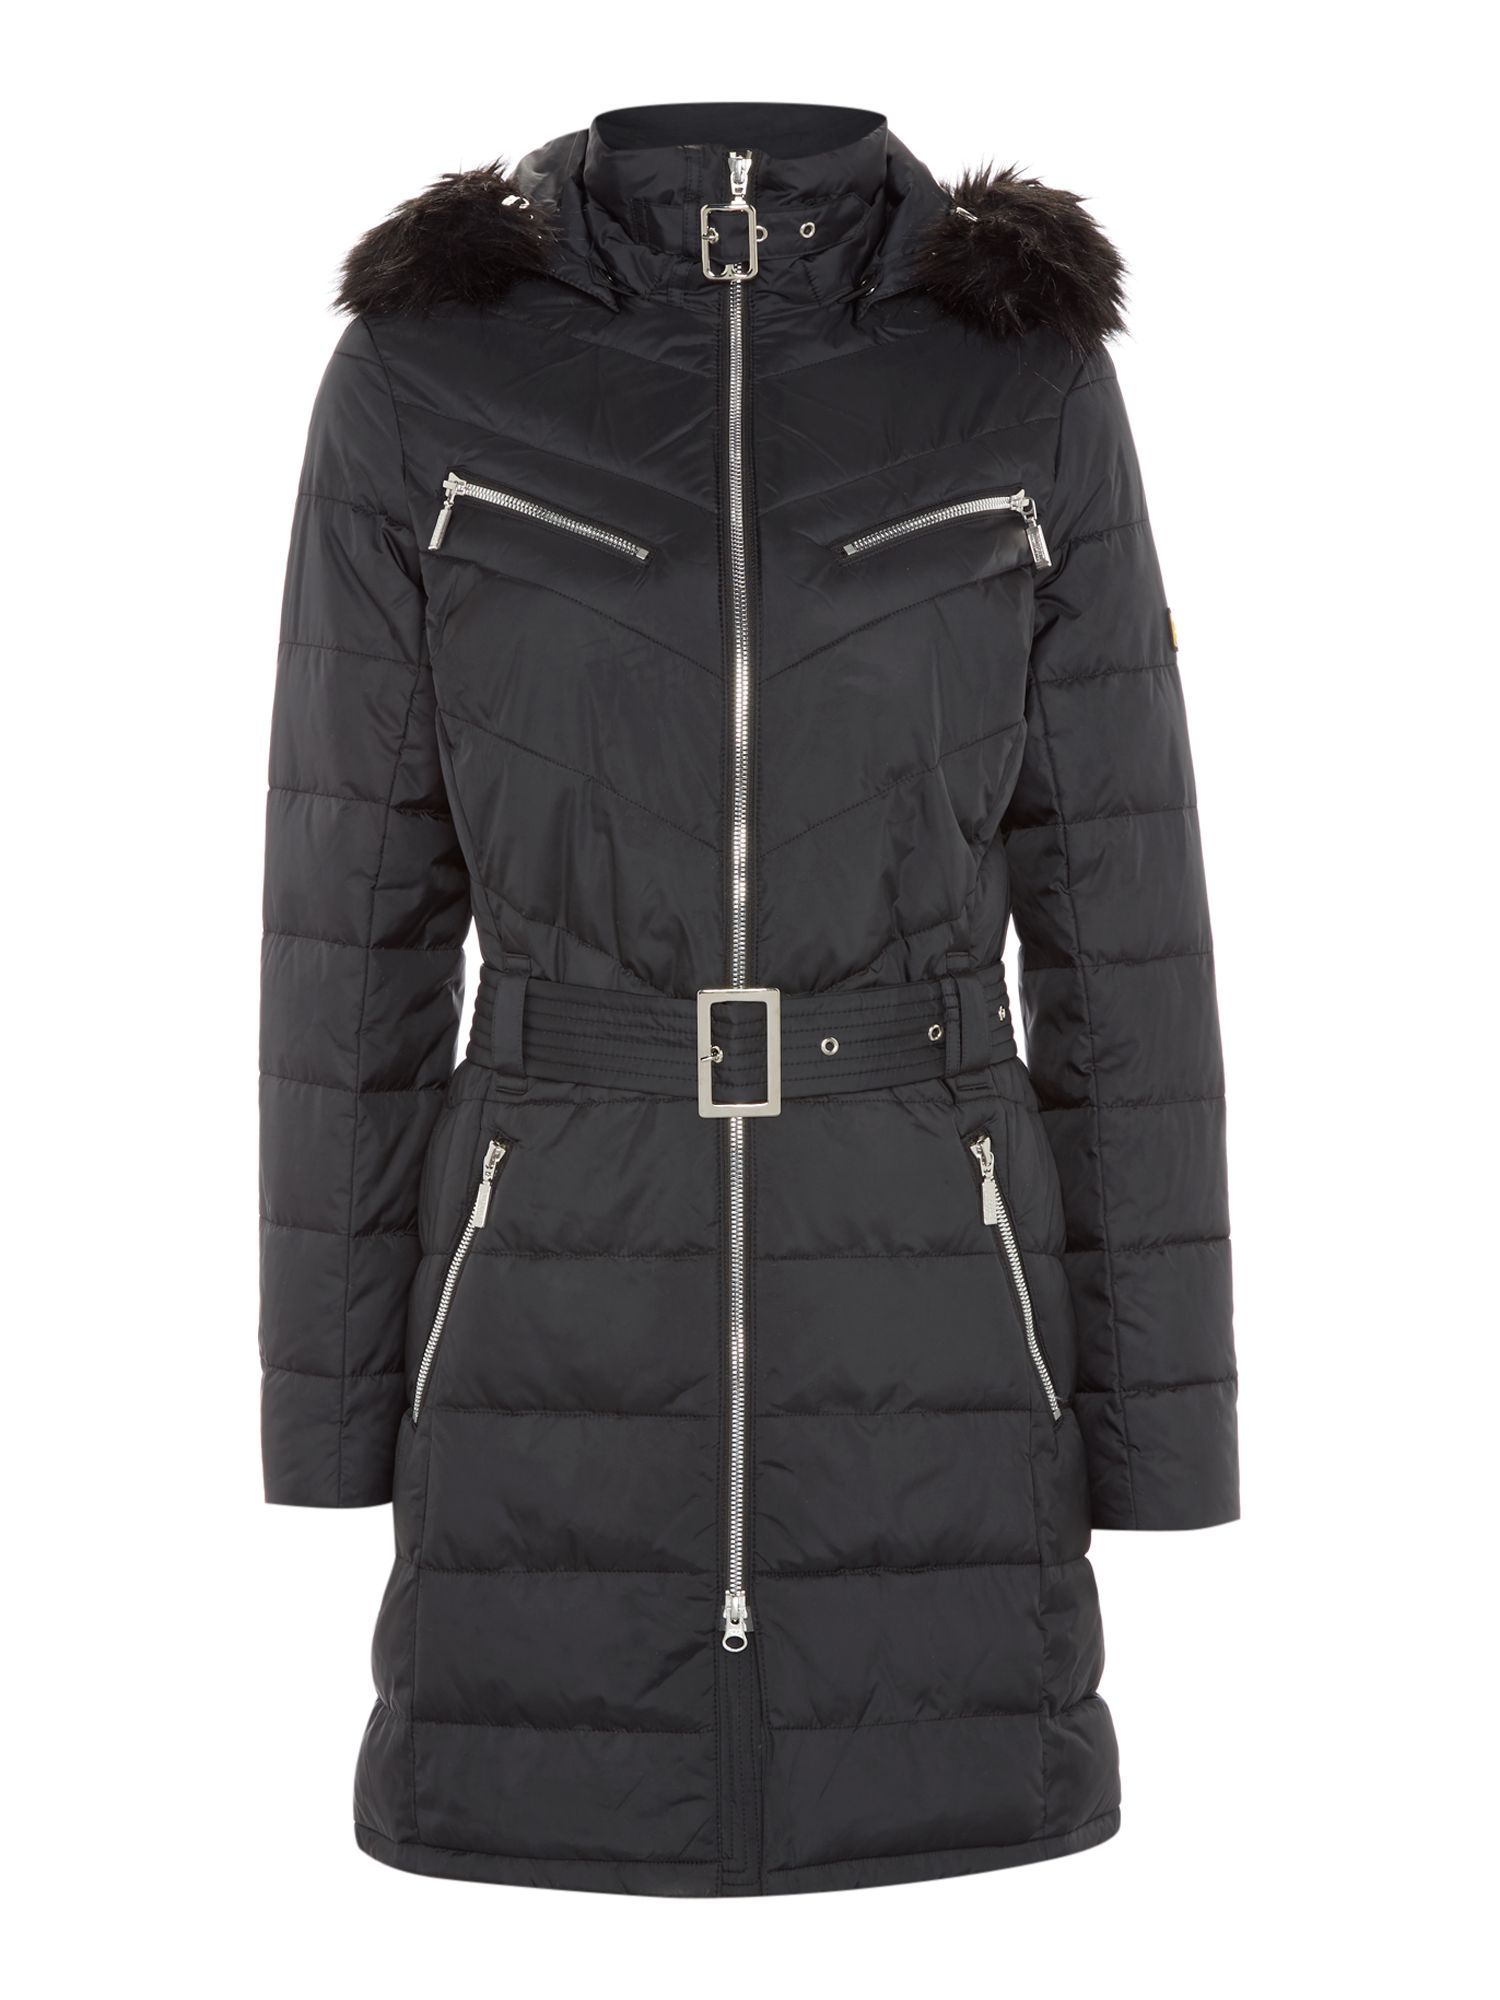 Barbour International Modello, Black